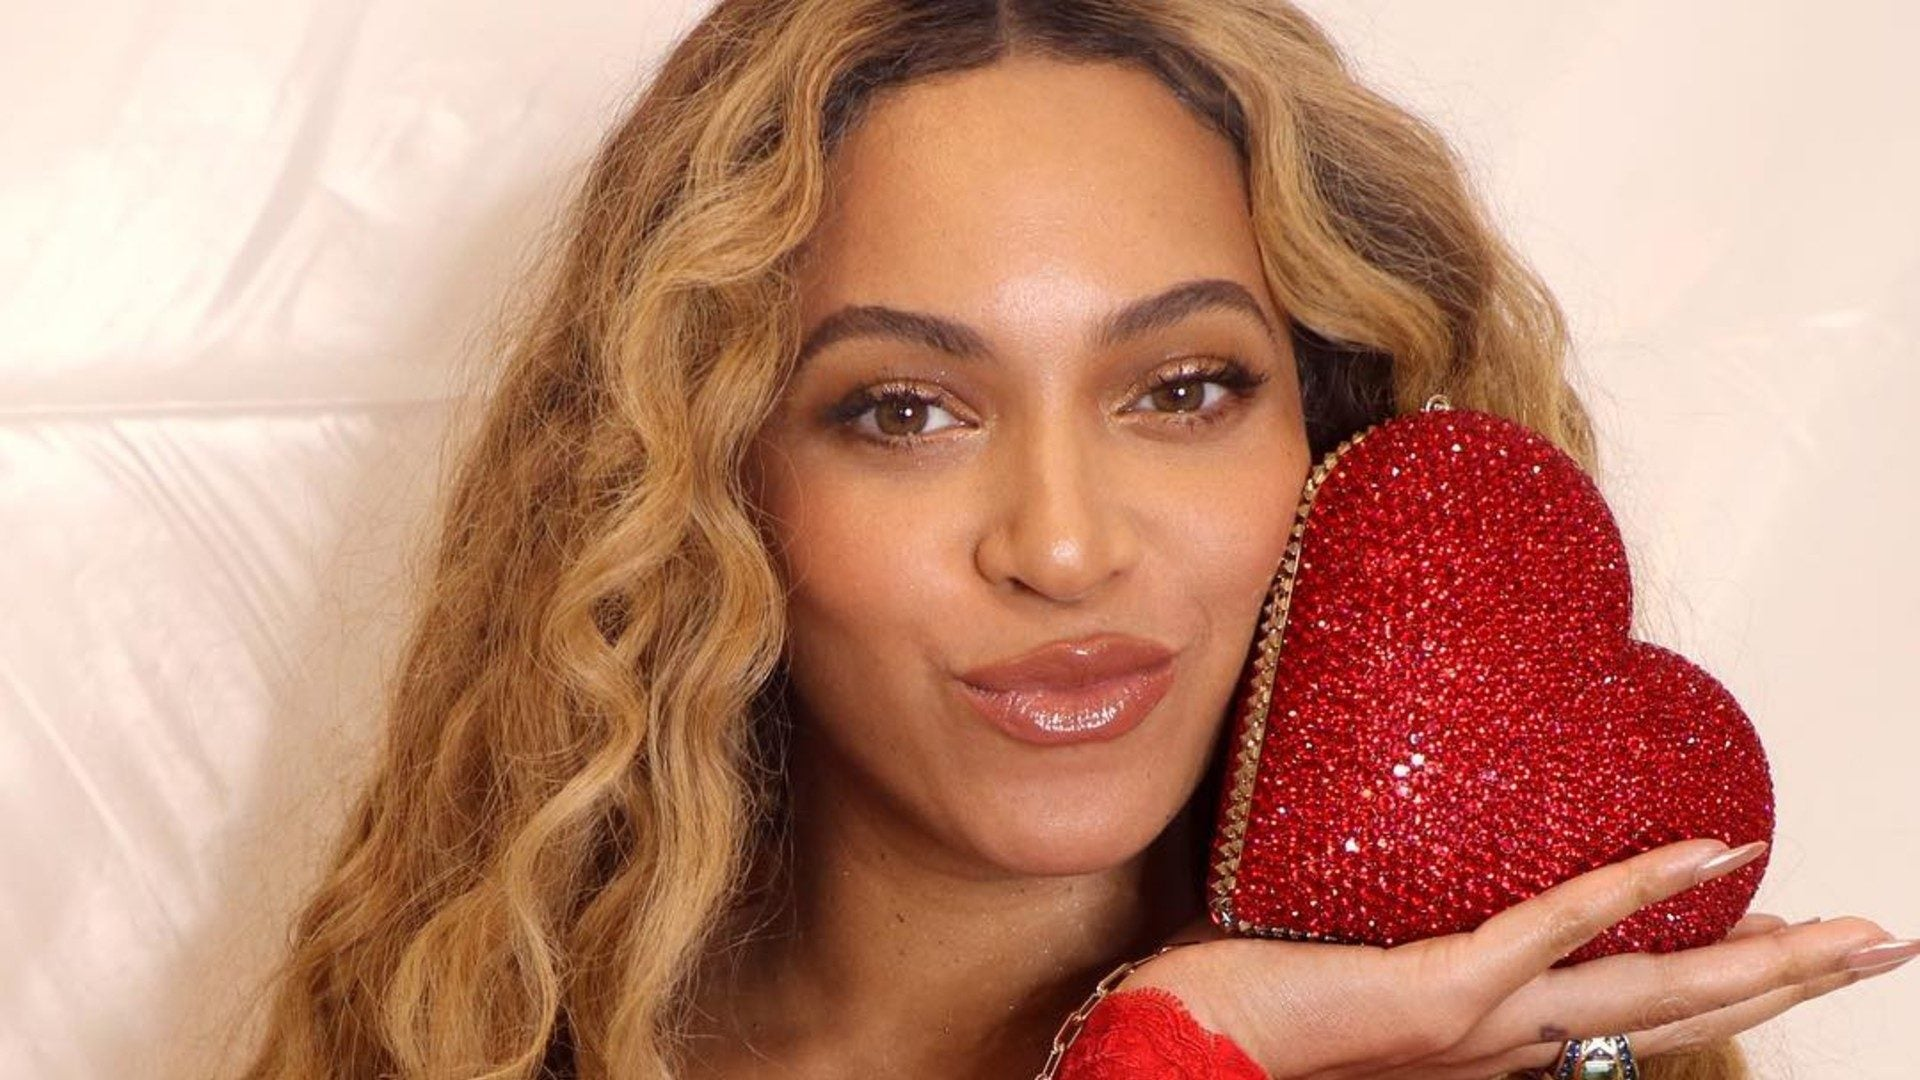 Beyoncé Goes Back To Blond With A New Hairdo